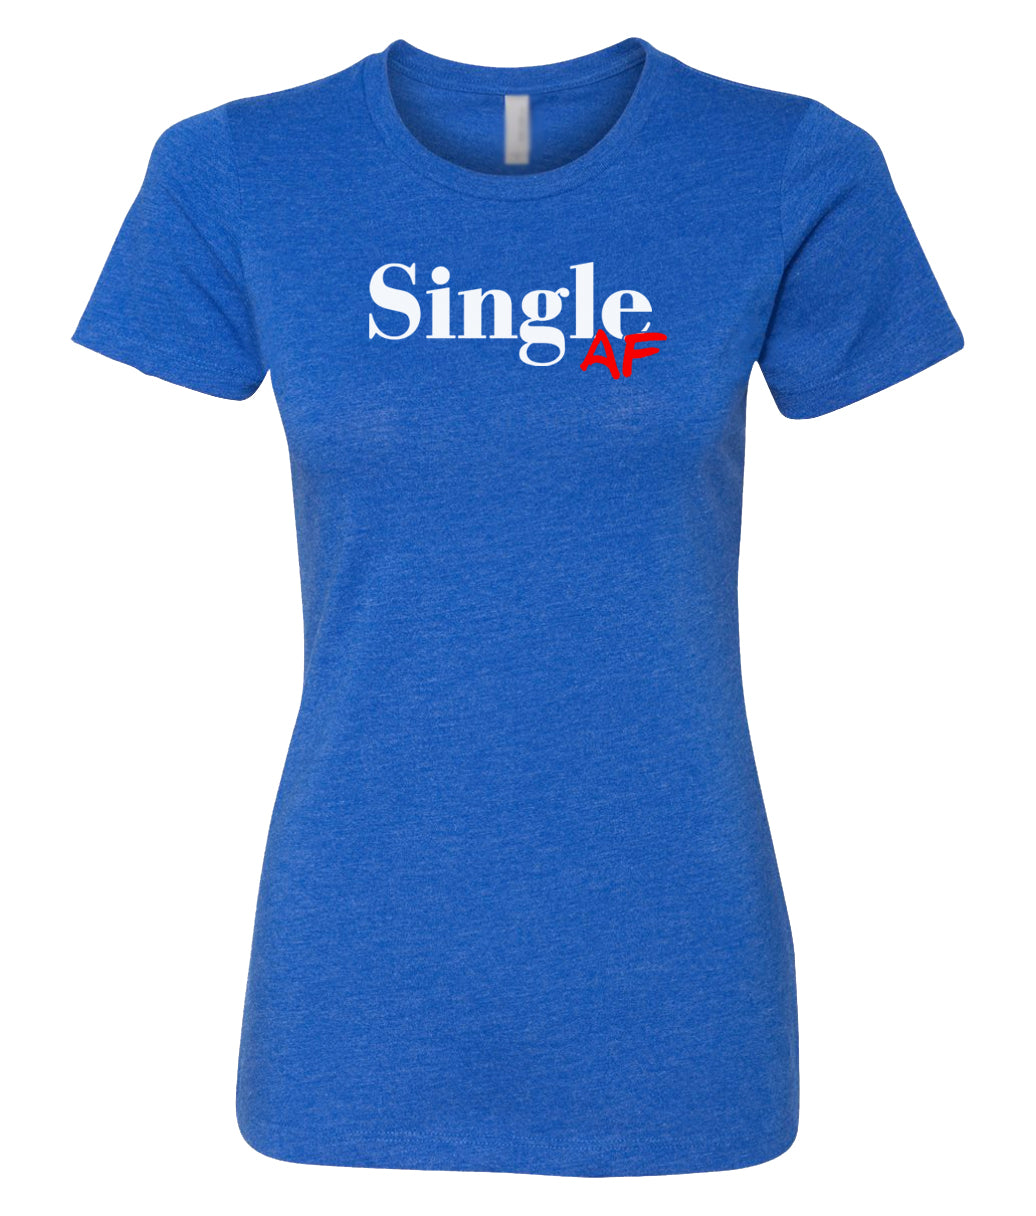 royal single AF crewneck women's tee